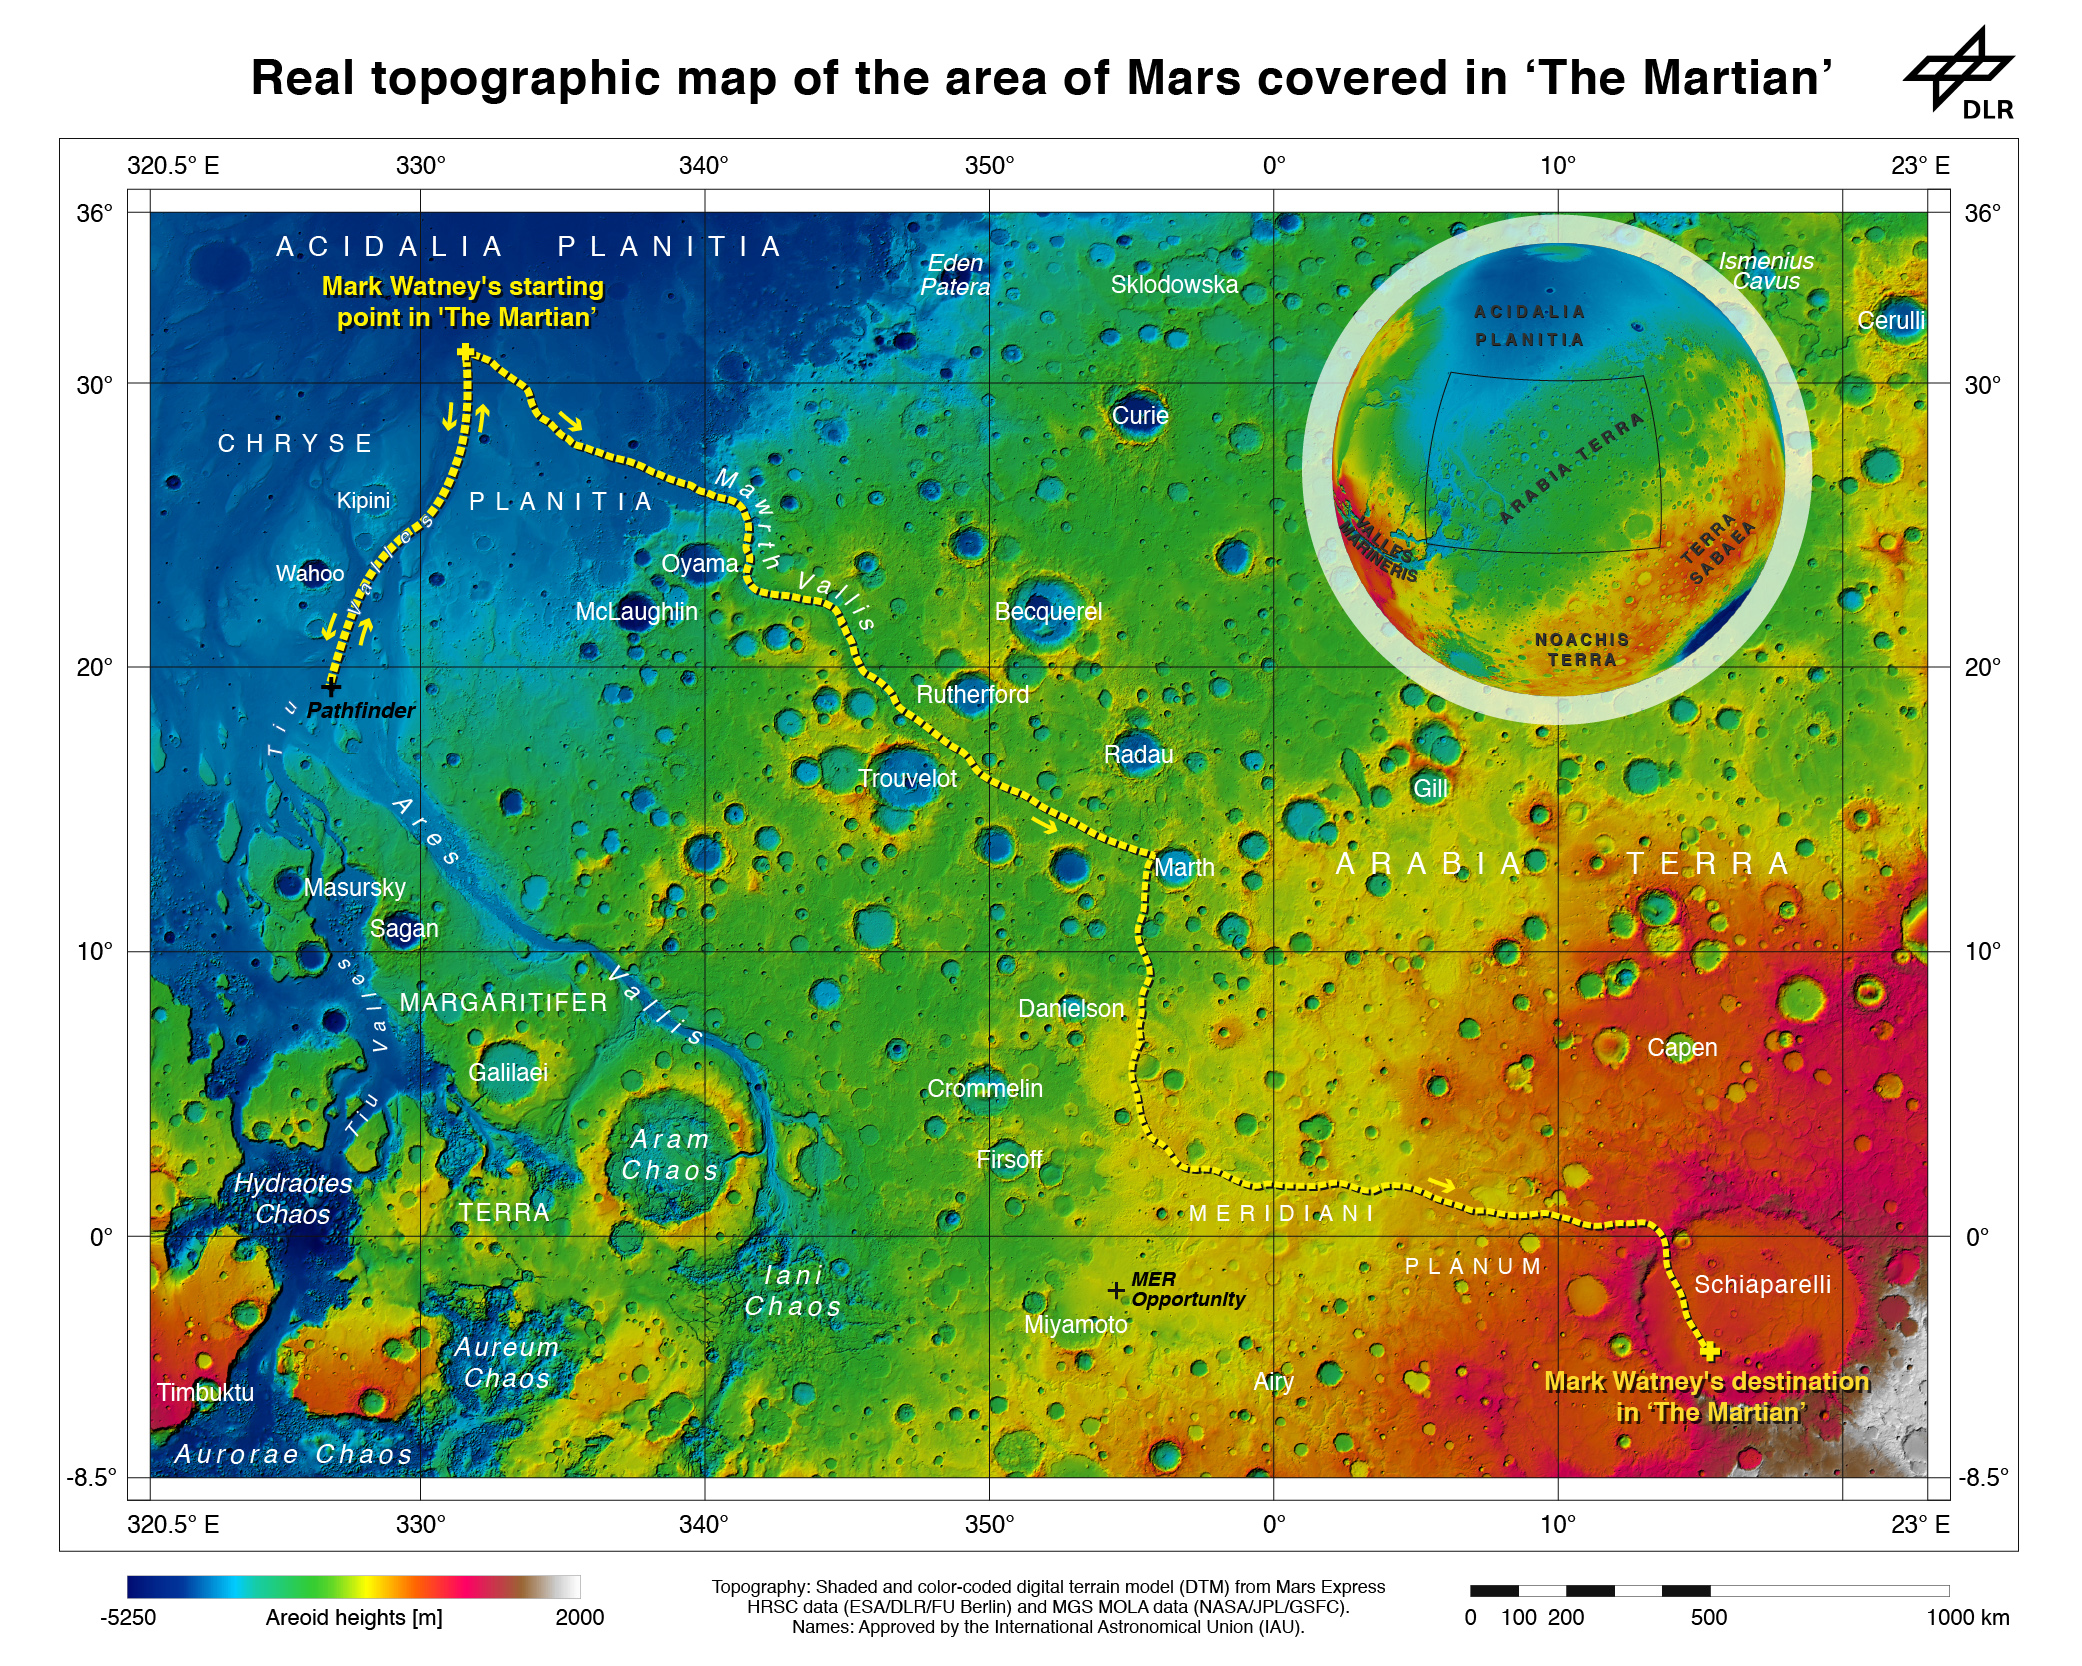 What is the average temperature on Mars?